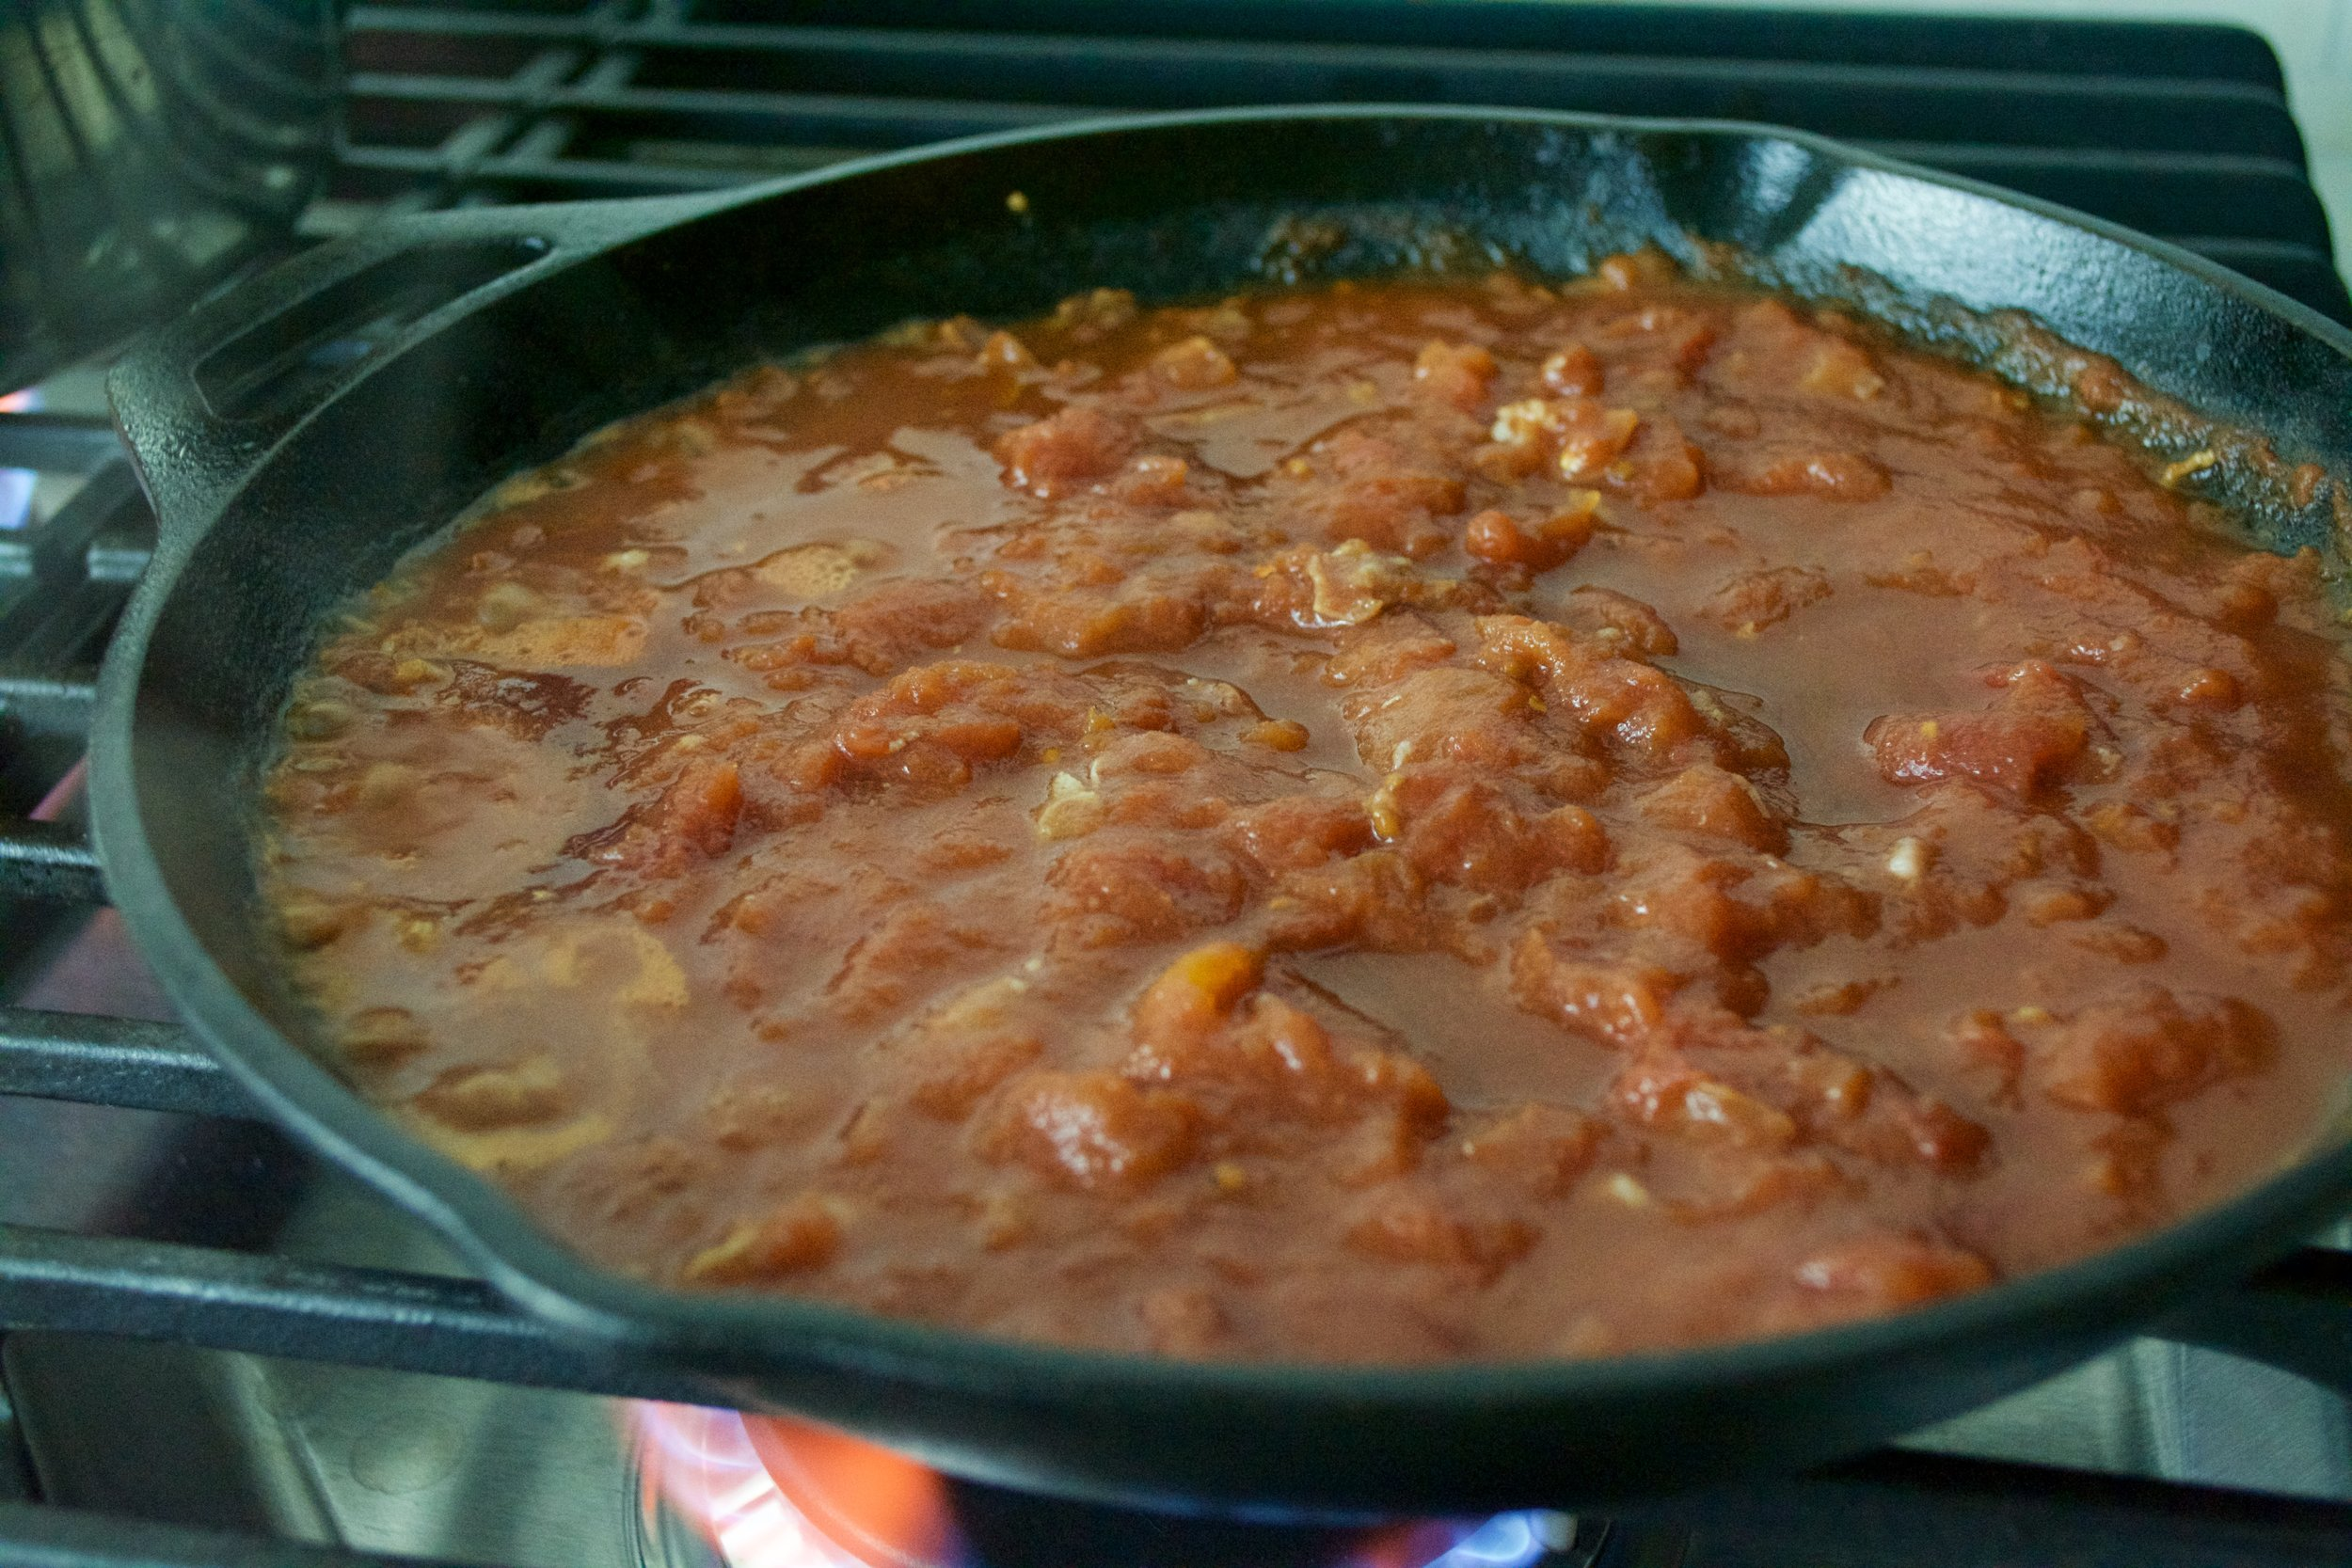 Simmering tomato and spice.